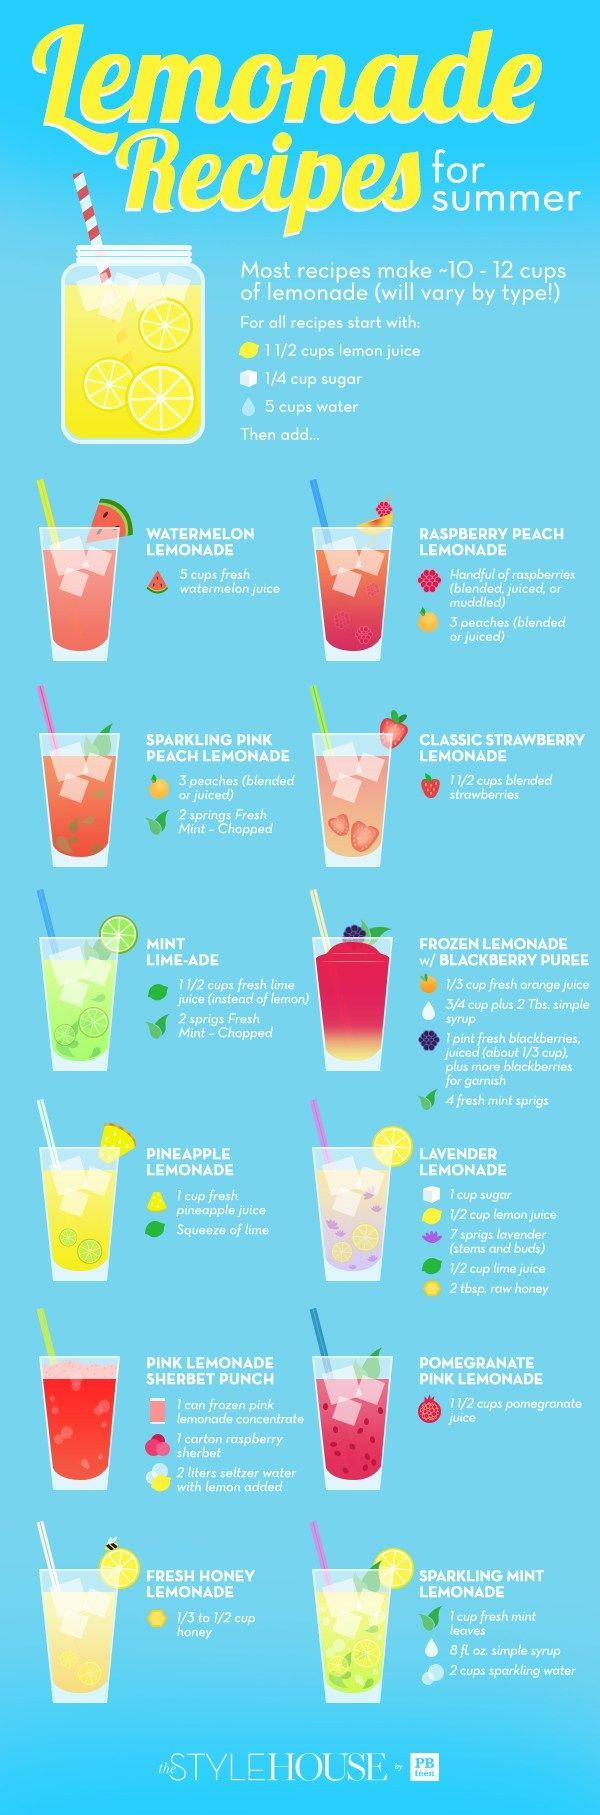 Lemonade Recipes for Summer ... I would probably make SUGAR FREE varieties. Flavorful Food Concepts and Ideas, Summer Drink Recipes, Refreshing Drinks, Mixers, Mixer, Refresher, Southern Drink Recipe, Dallas, Houston, Atlanta, Miami,New York, Los Angeles, Chicago, New Orleans, Nashville, Memphis.